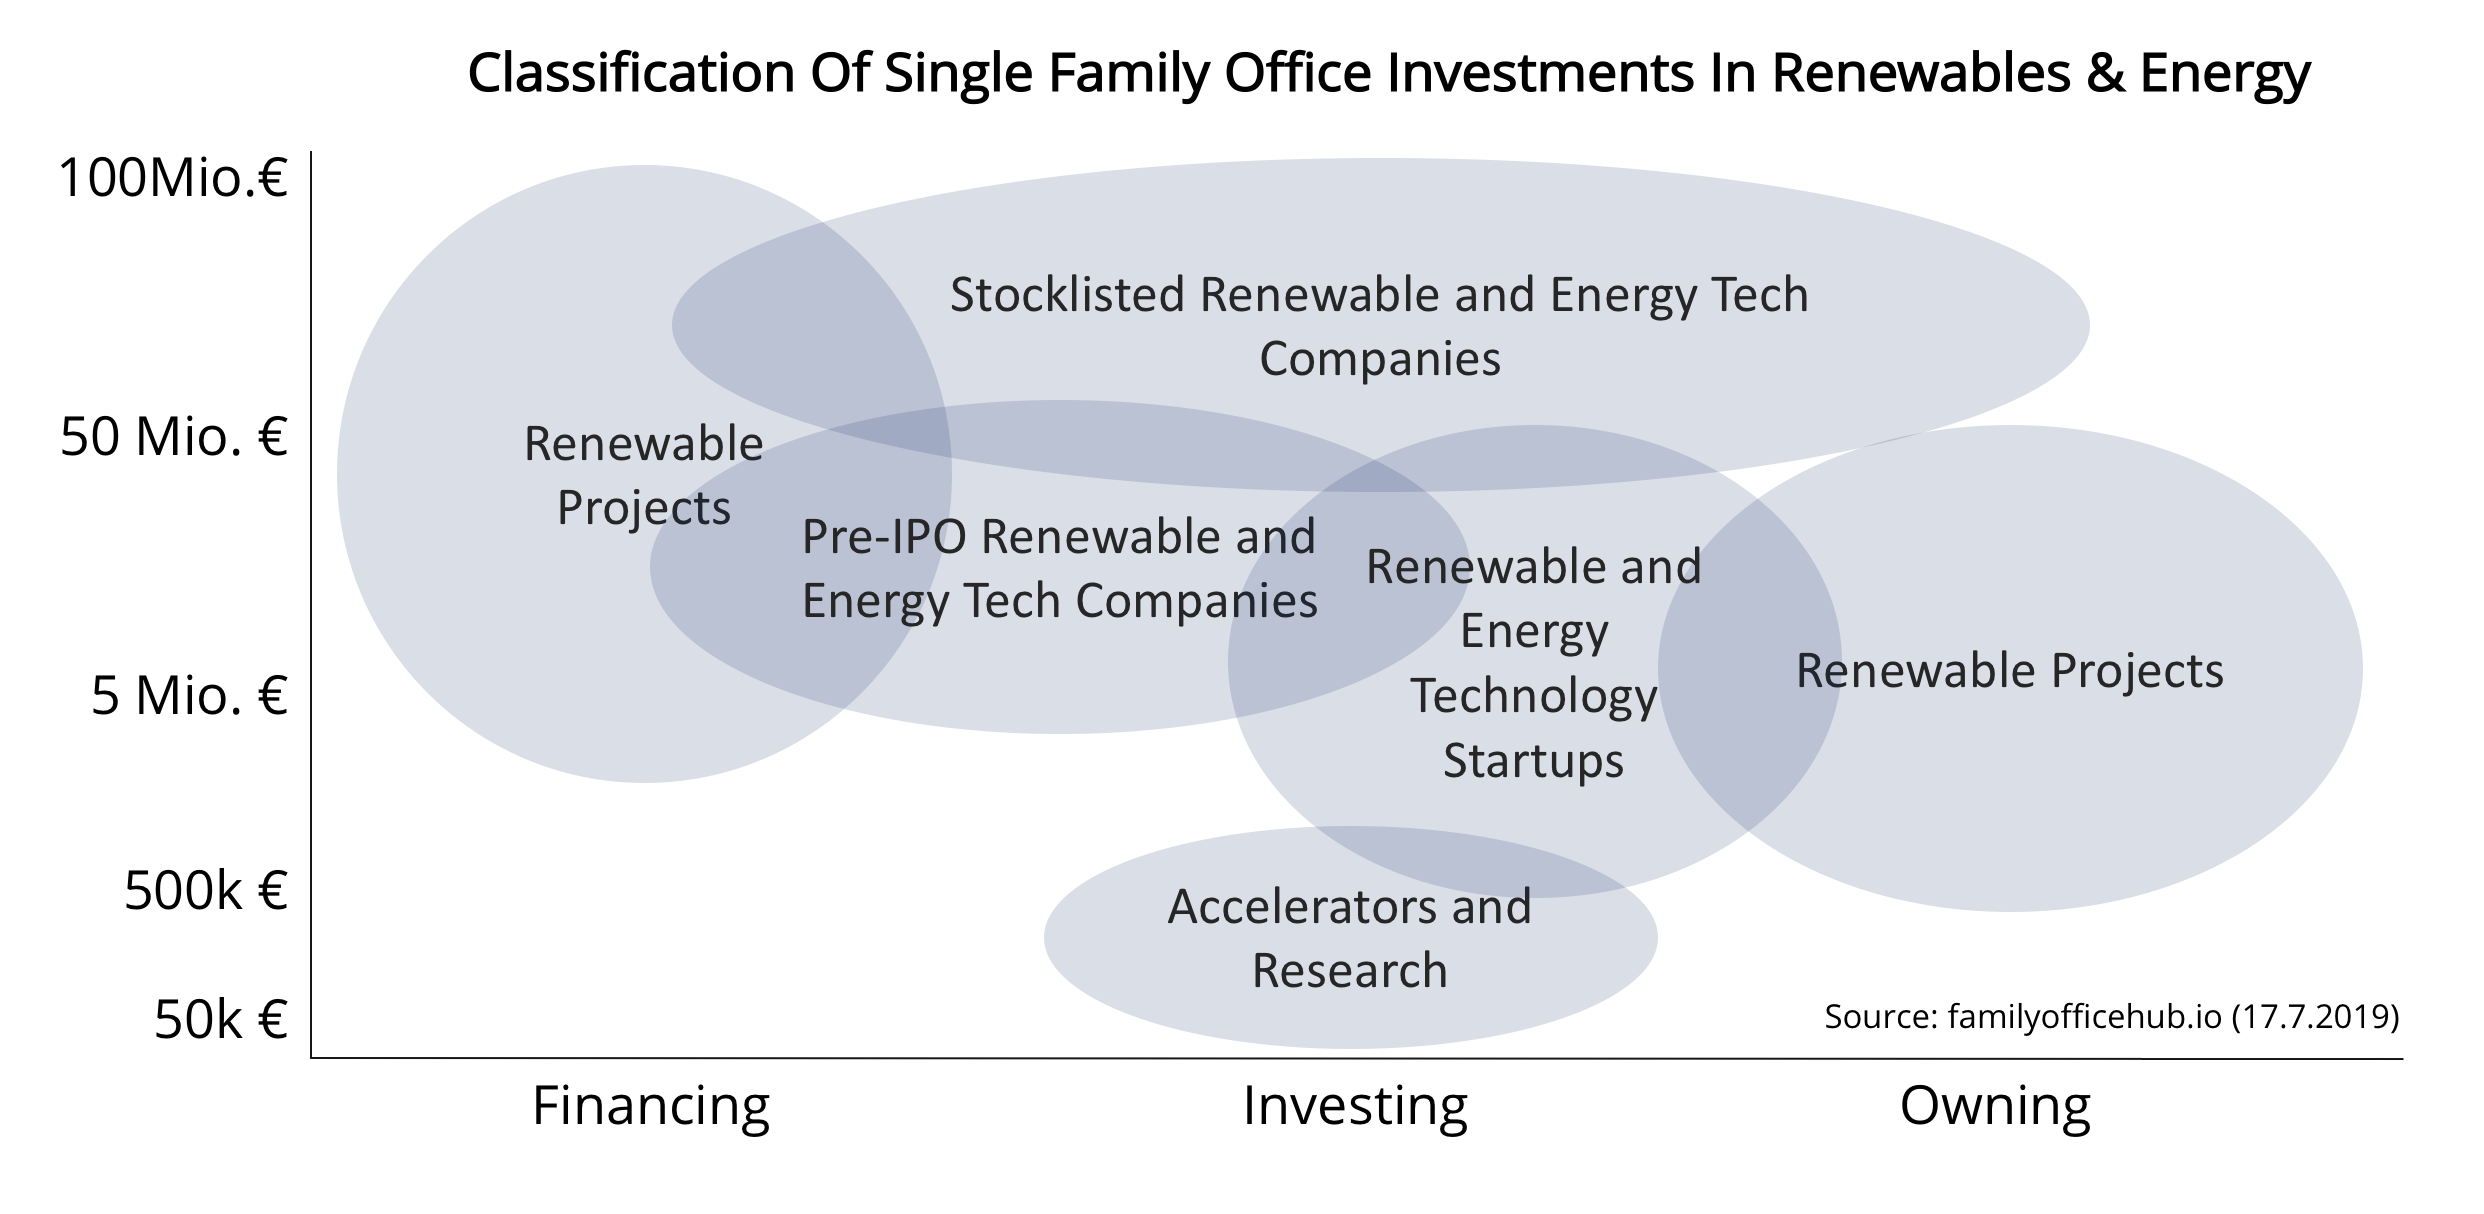 single family office investments renewables energy companies